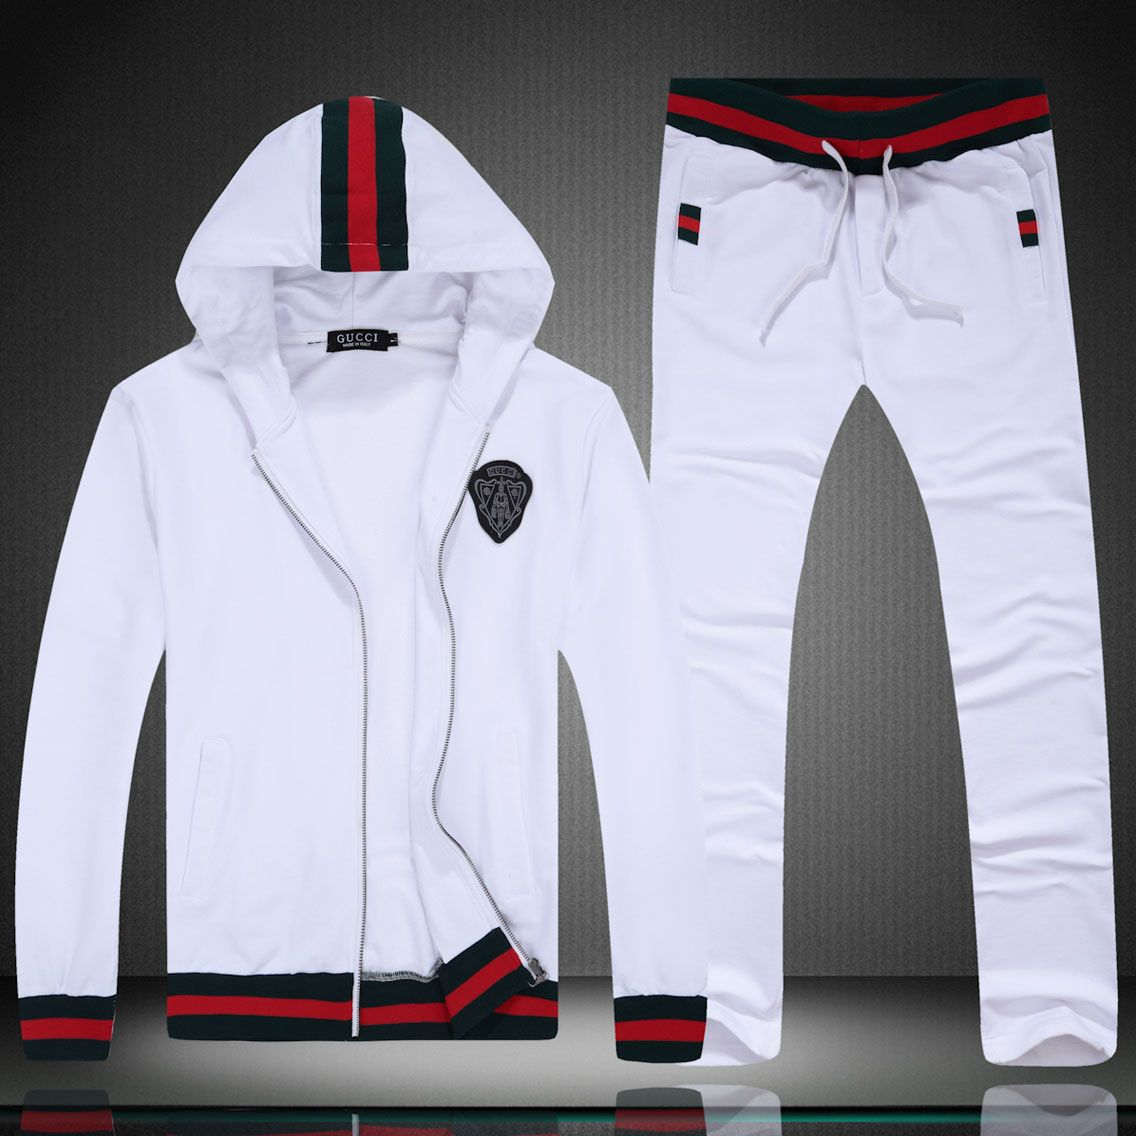 573507fa75a Replica cheap outlet Gucci Tracksuits for MEN  199328